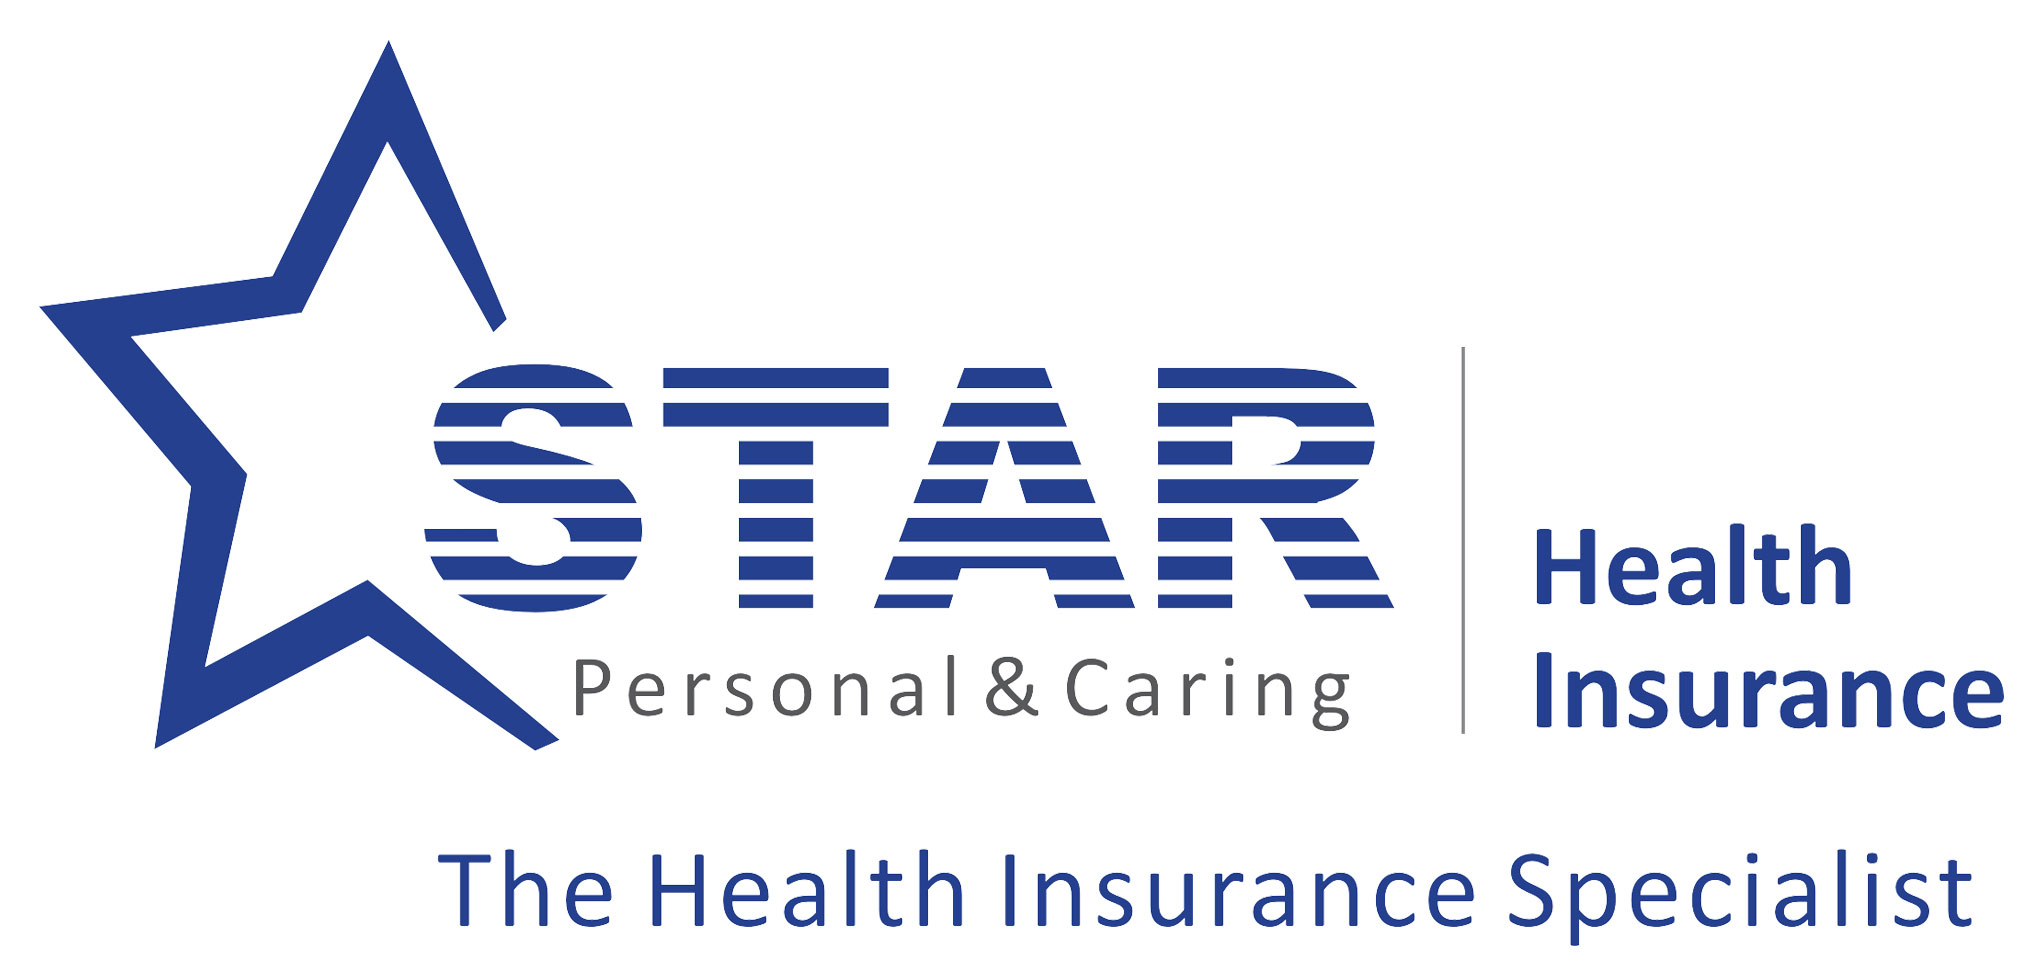 Star Family Health Optima Insurance Plan Image